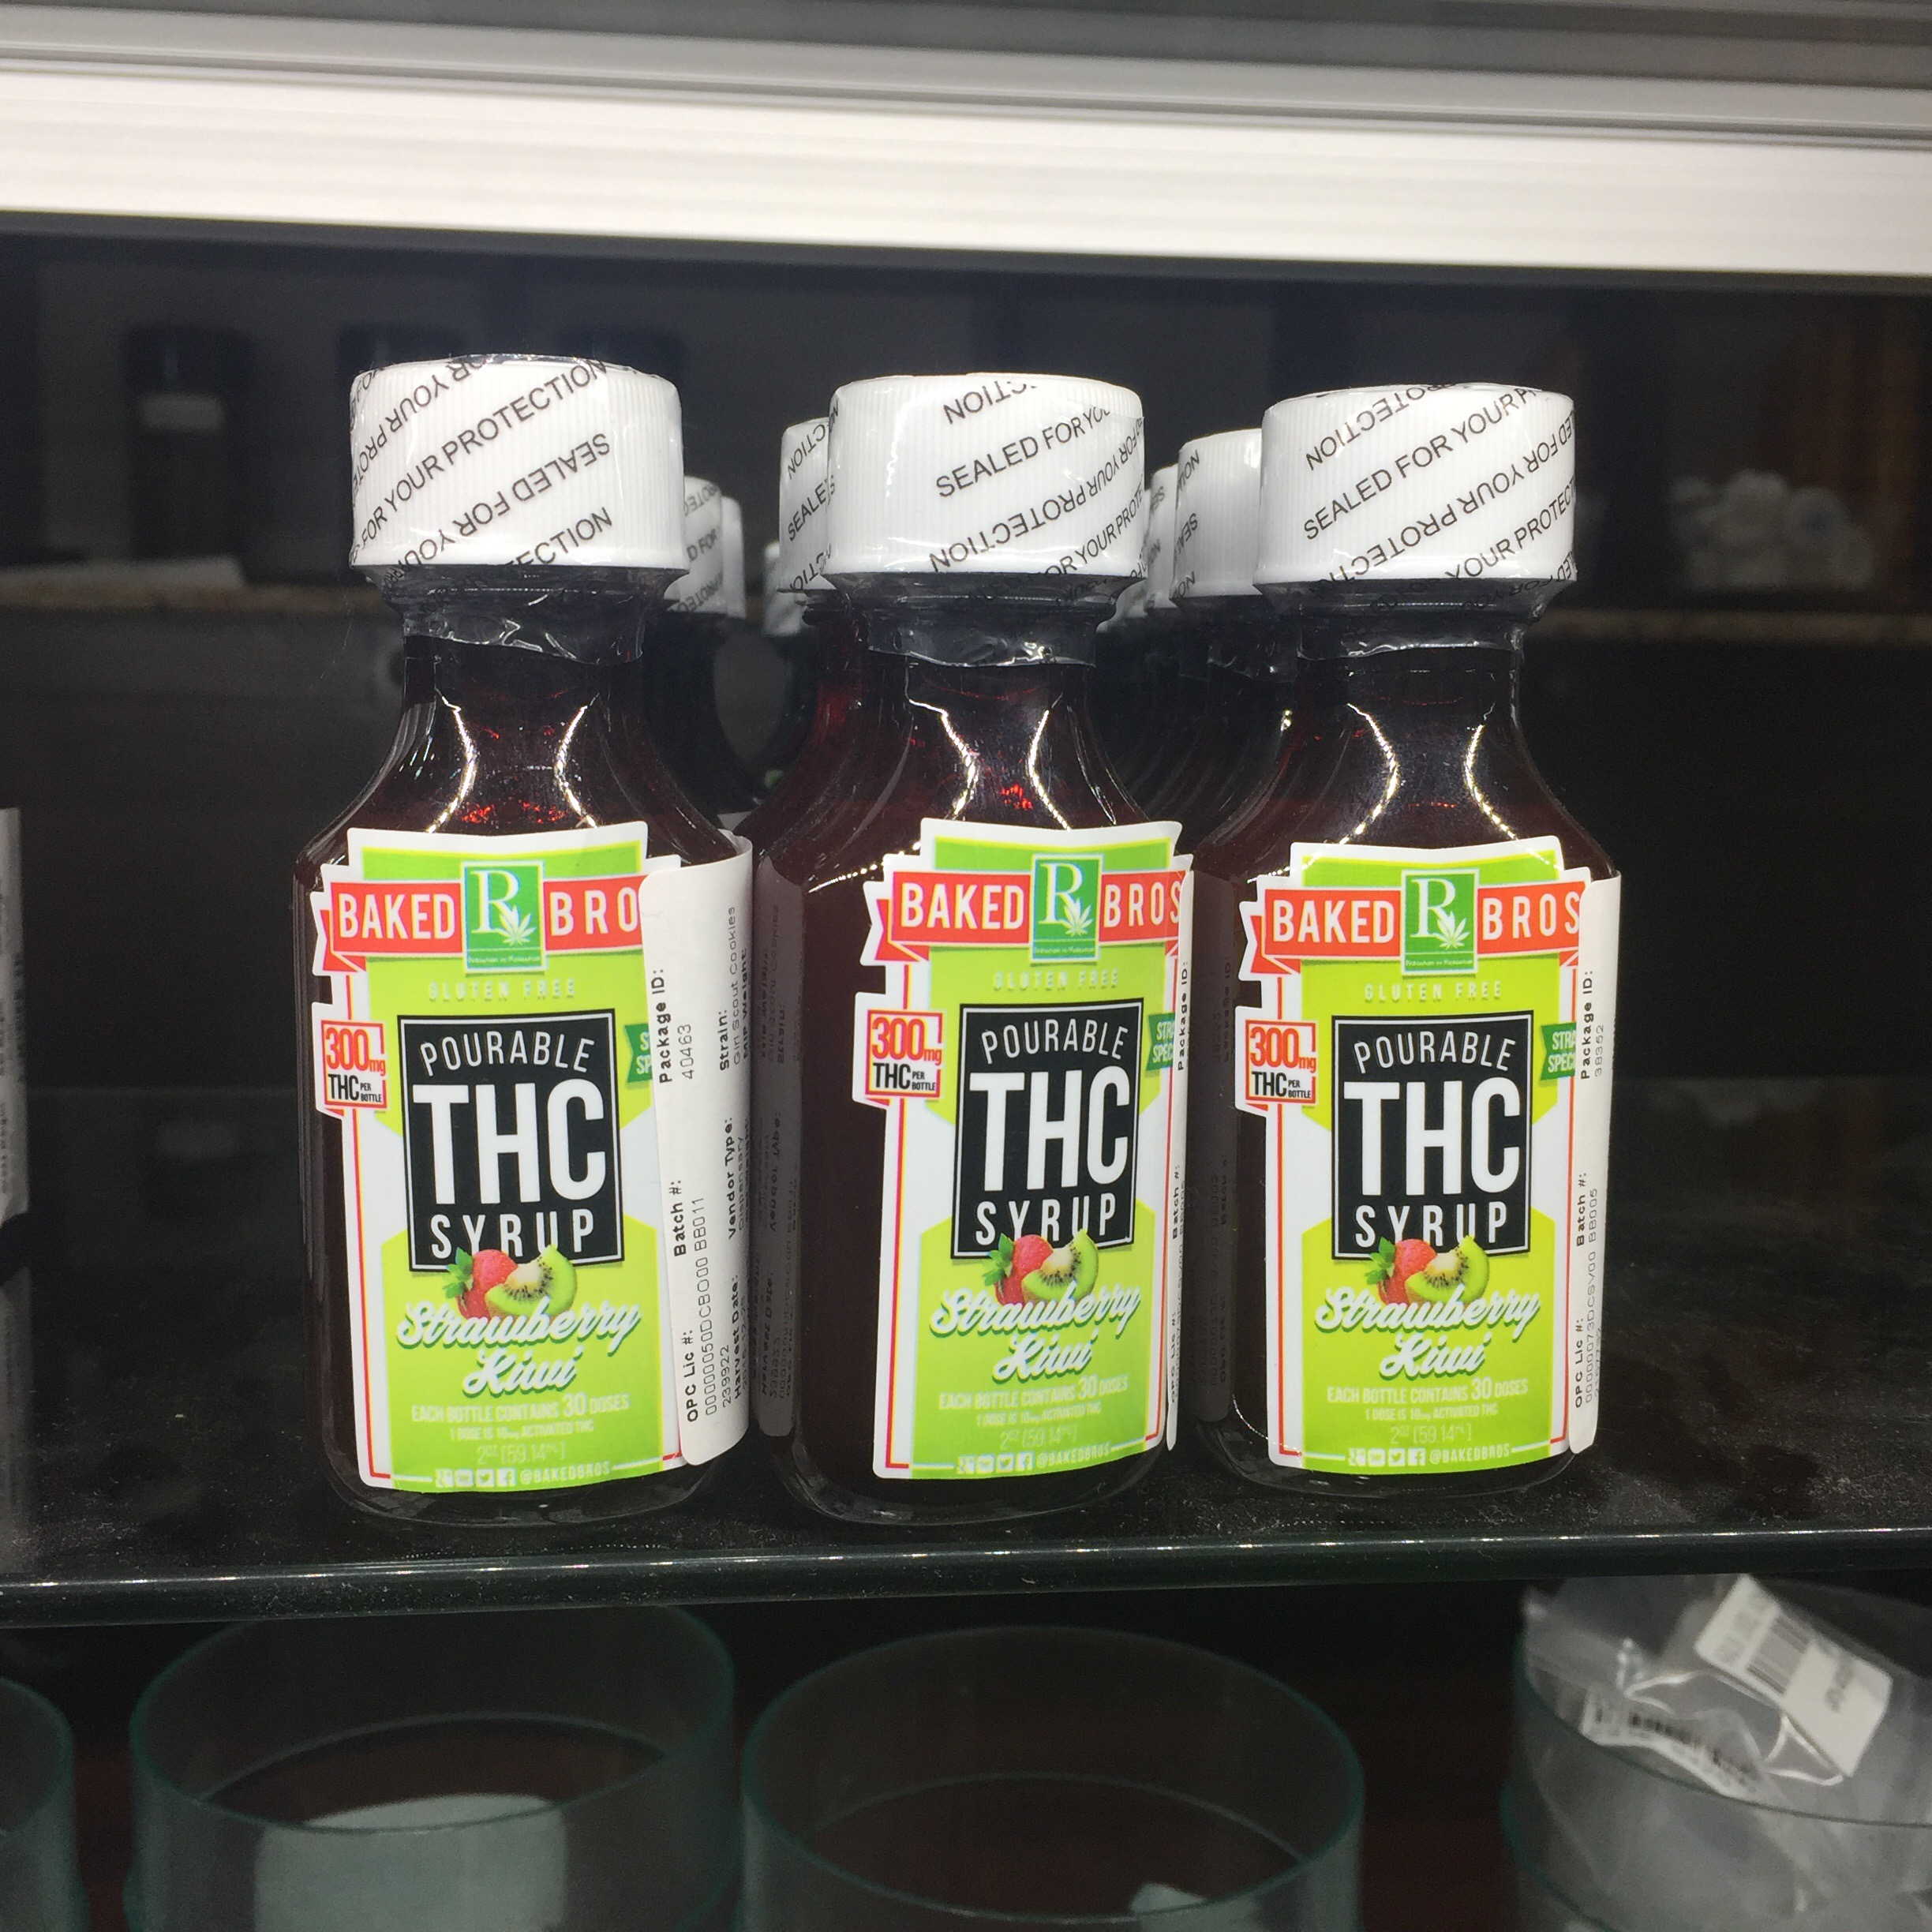 Baked-Bros-Pourable-THC-Syrup.jpg